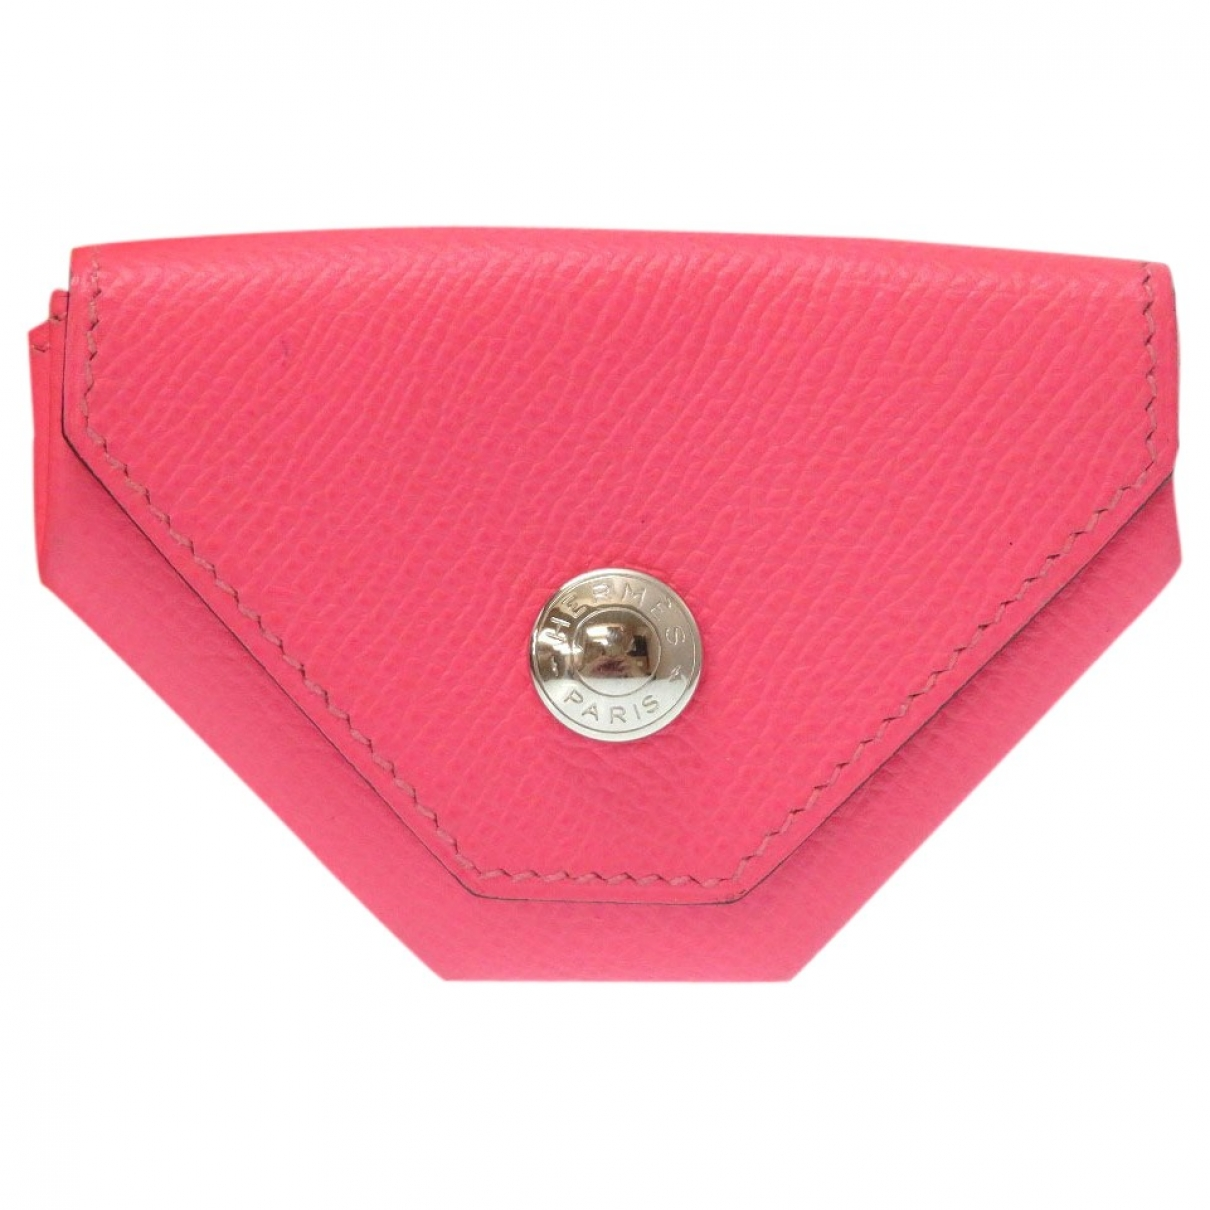 Herm??s 24 Pink Leather Purses, wallet & cases for Women \N